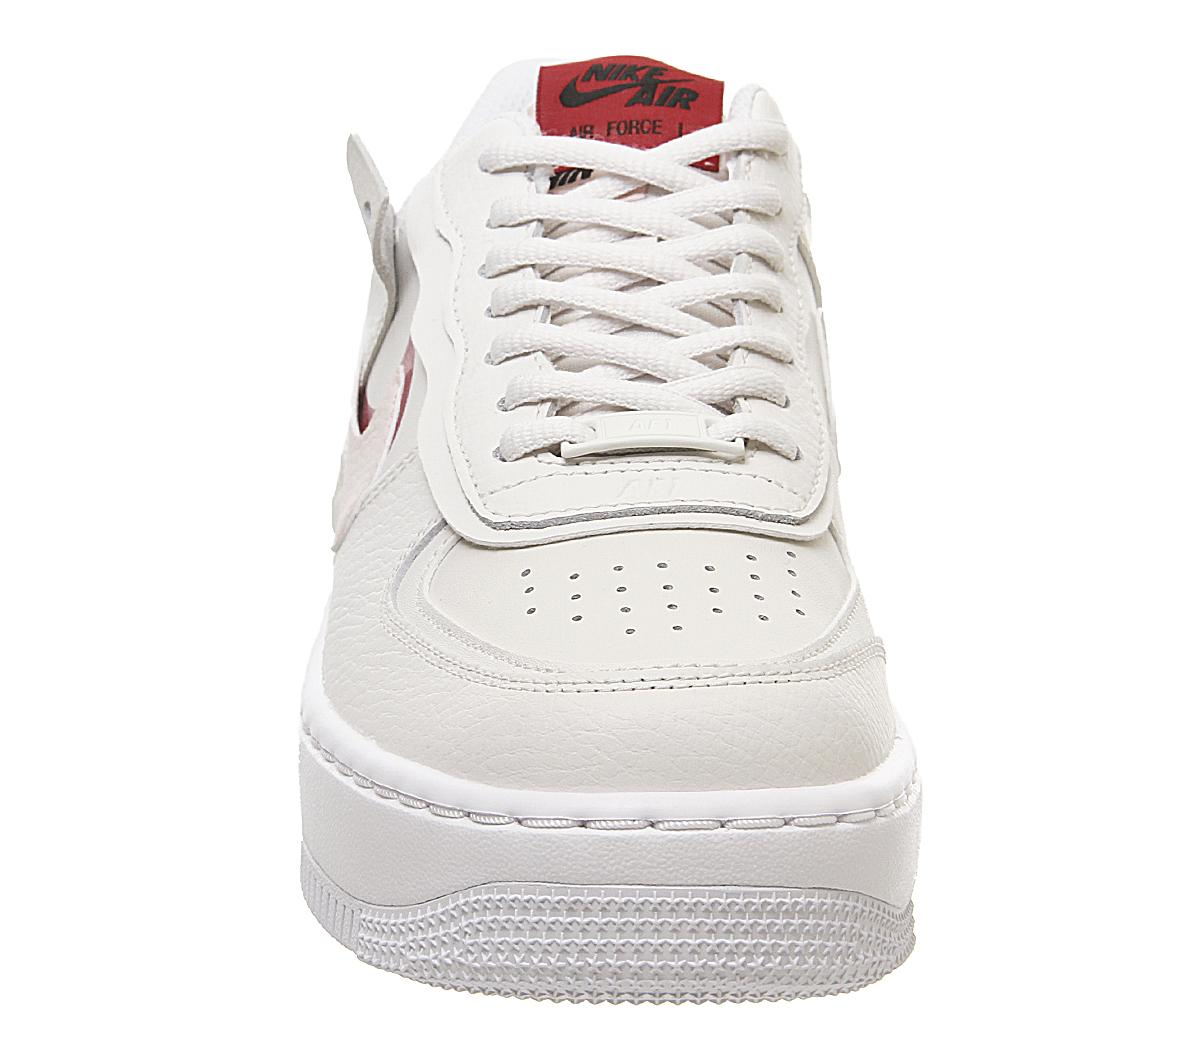 Nike Air Force 1 Shadow Phantom Echo Pink Gym Red Unisex Sports Nike is rolling out a newly designed silhouette titled the air force 1 shadow. air force 1 shadow